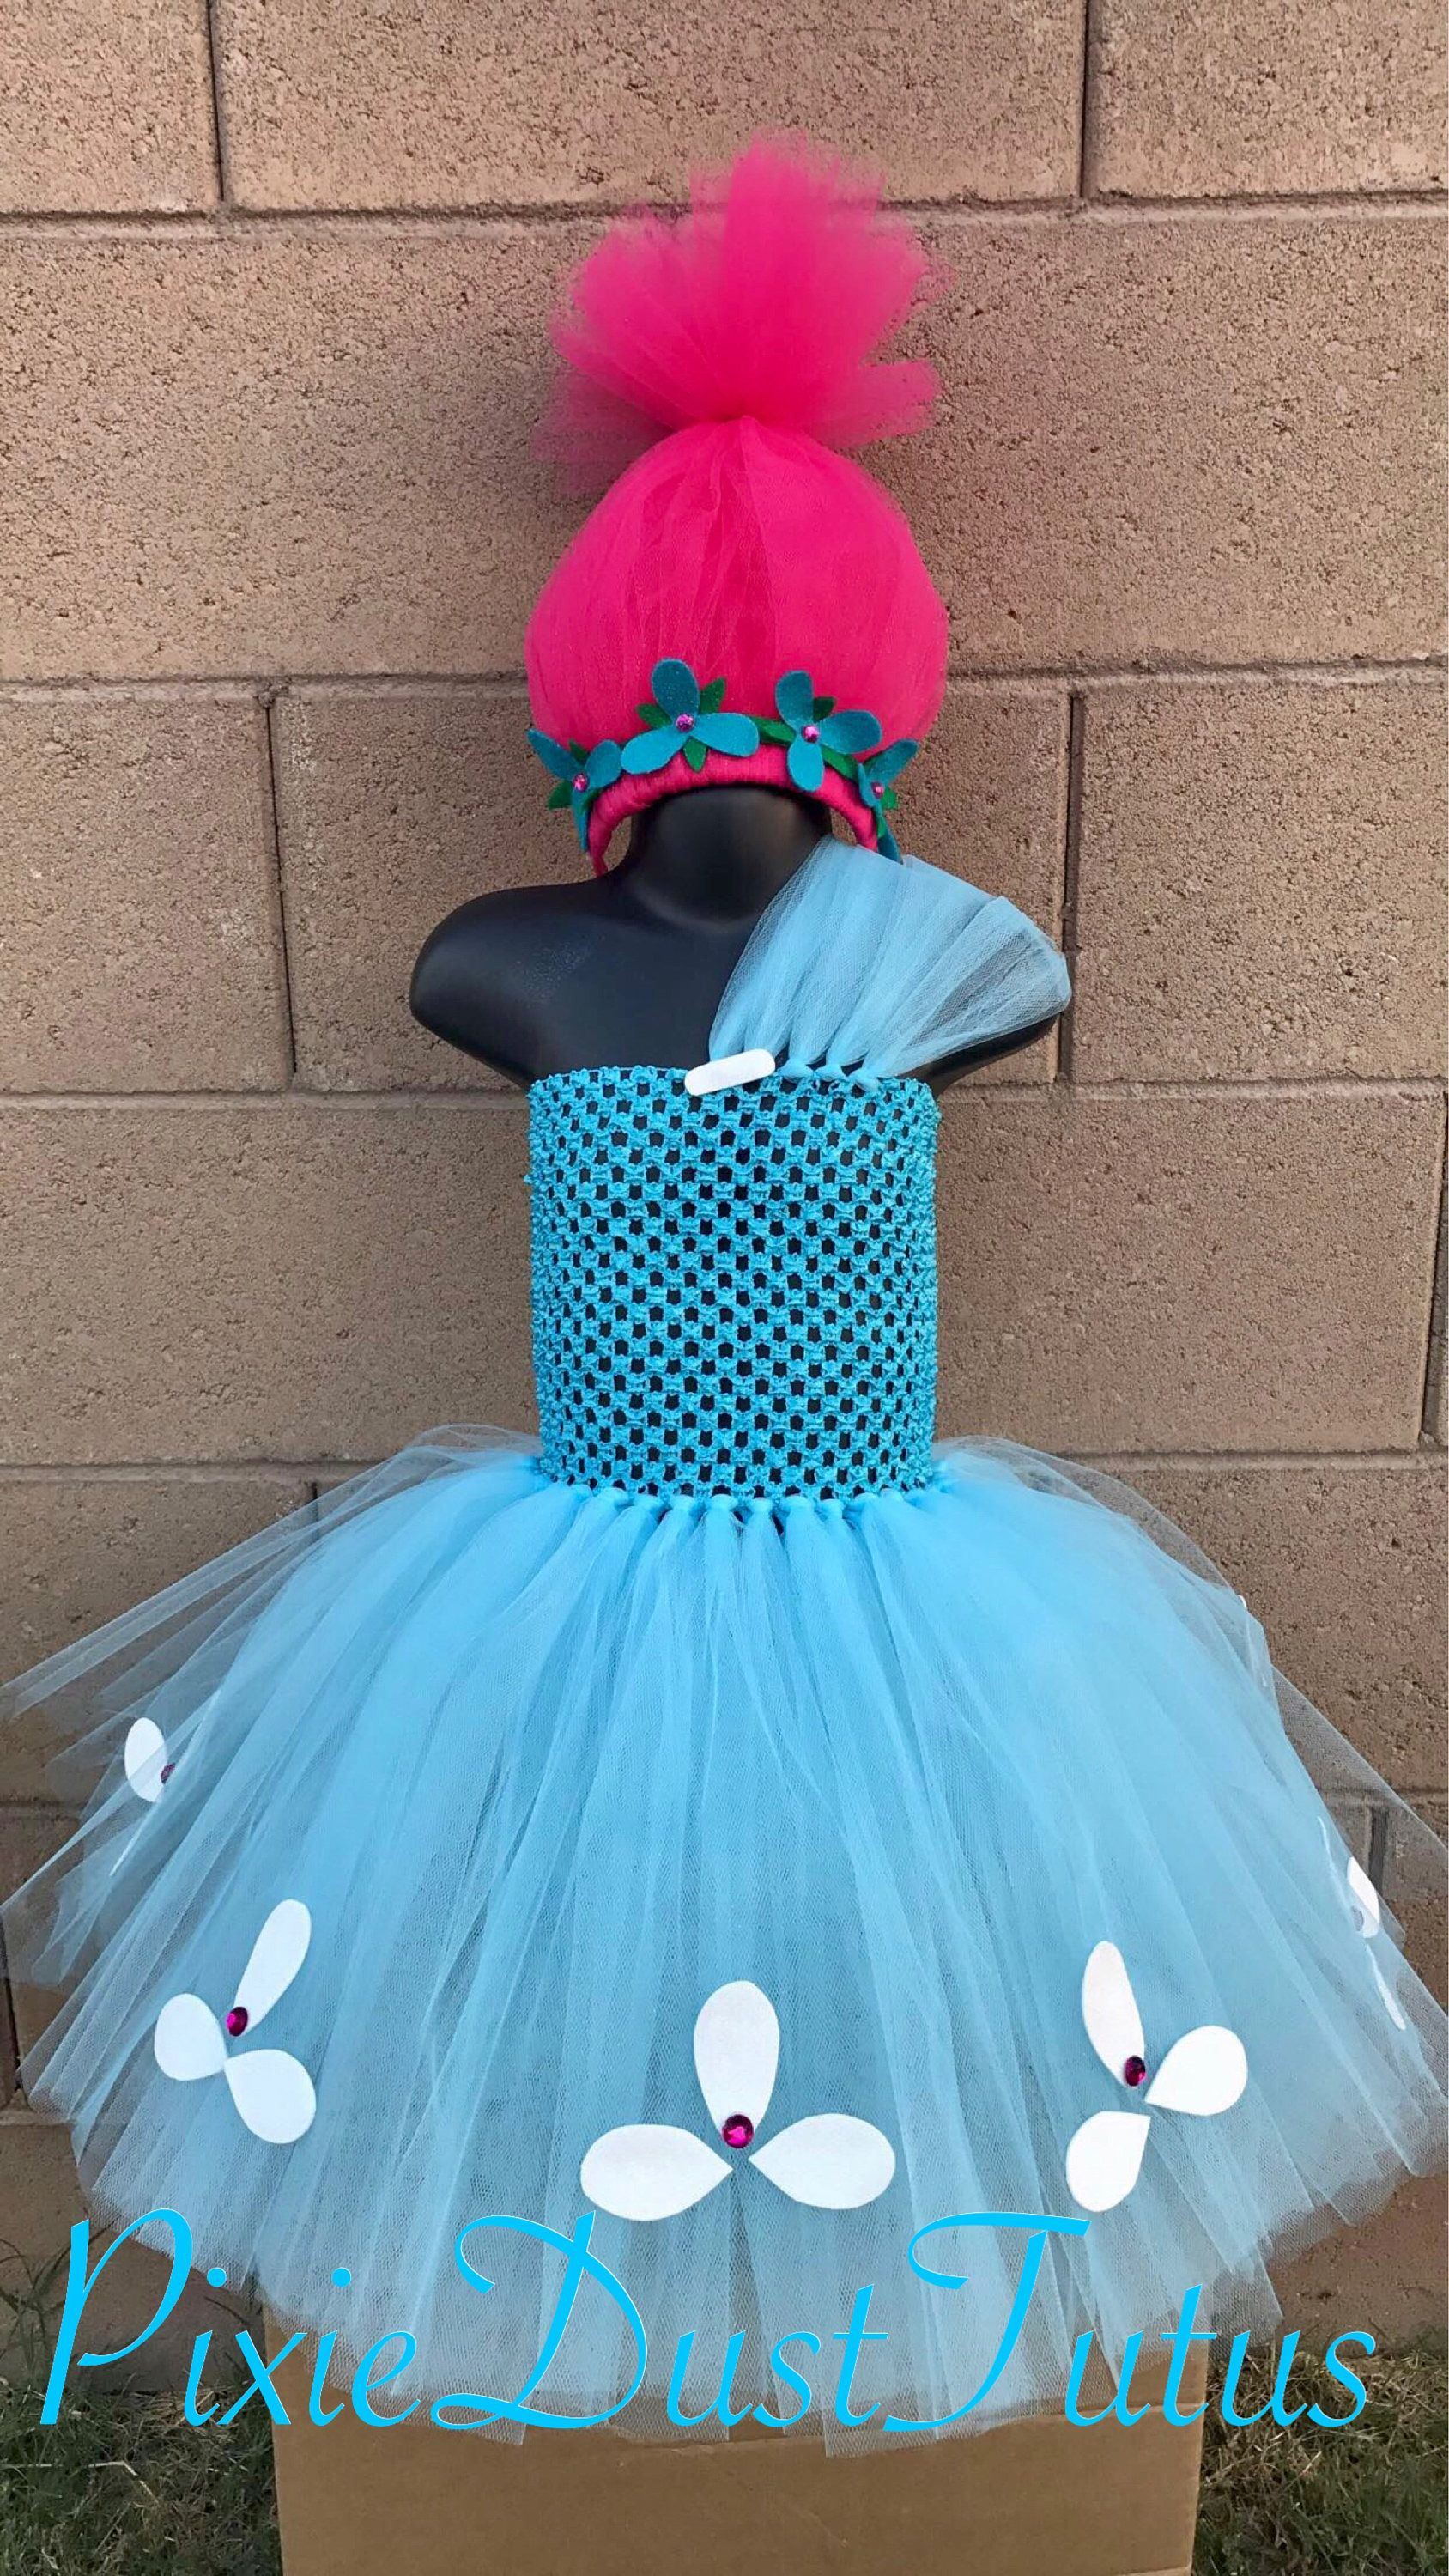 Trolls Princess Poppy Tutu Dress | Tutu dresses, Tutu and Princess